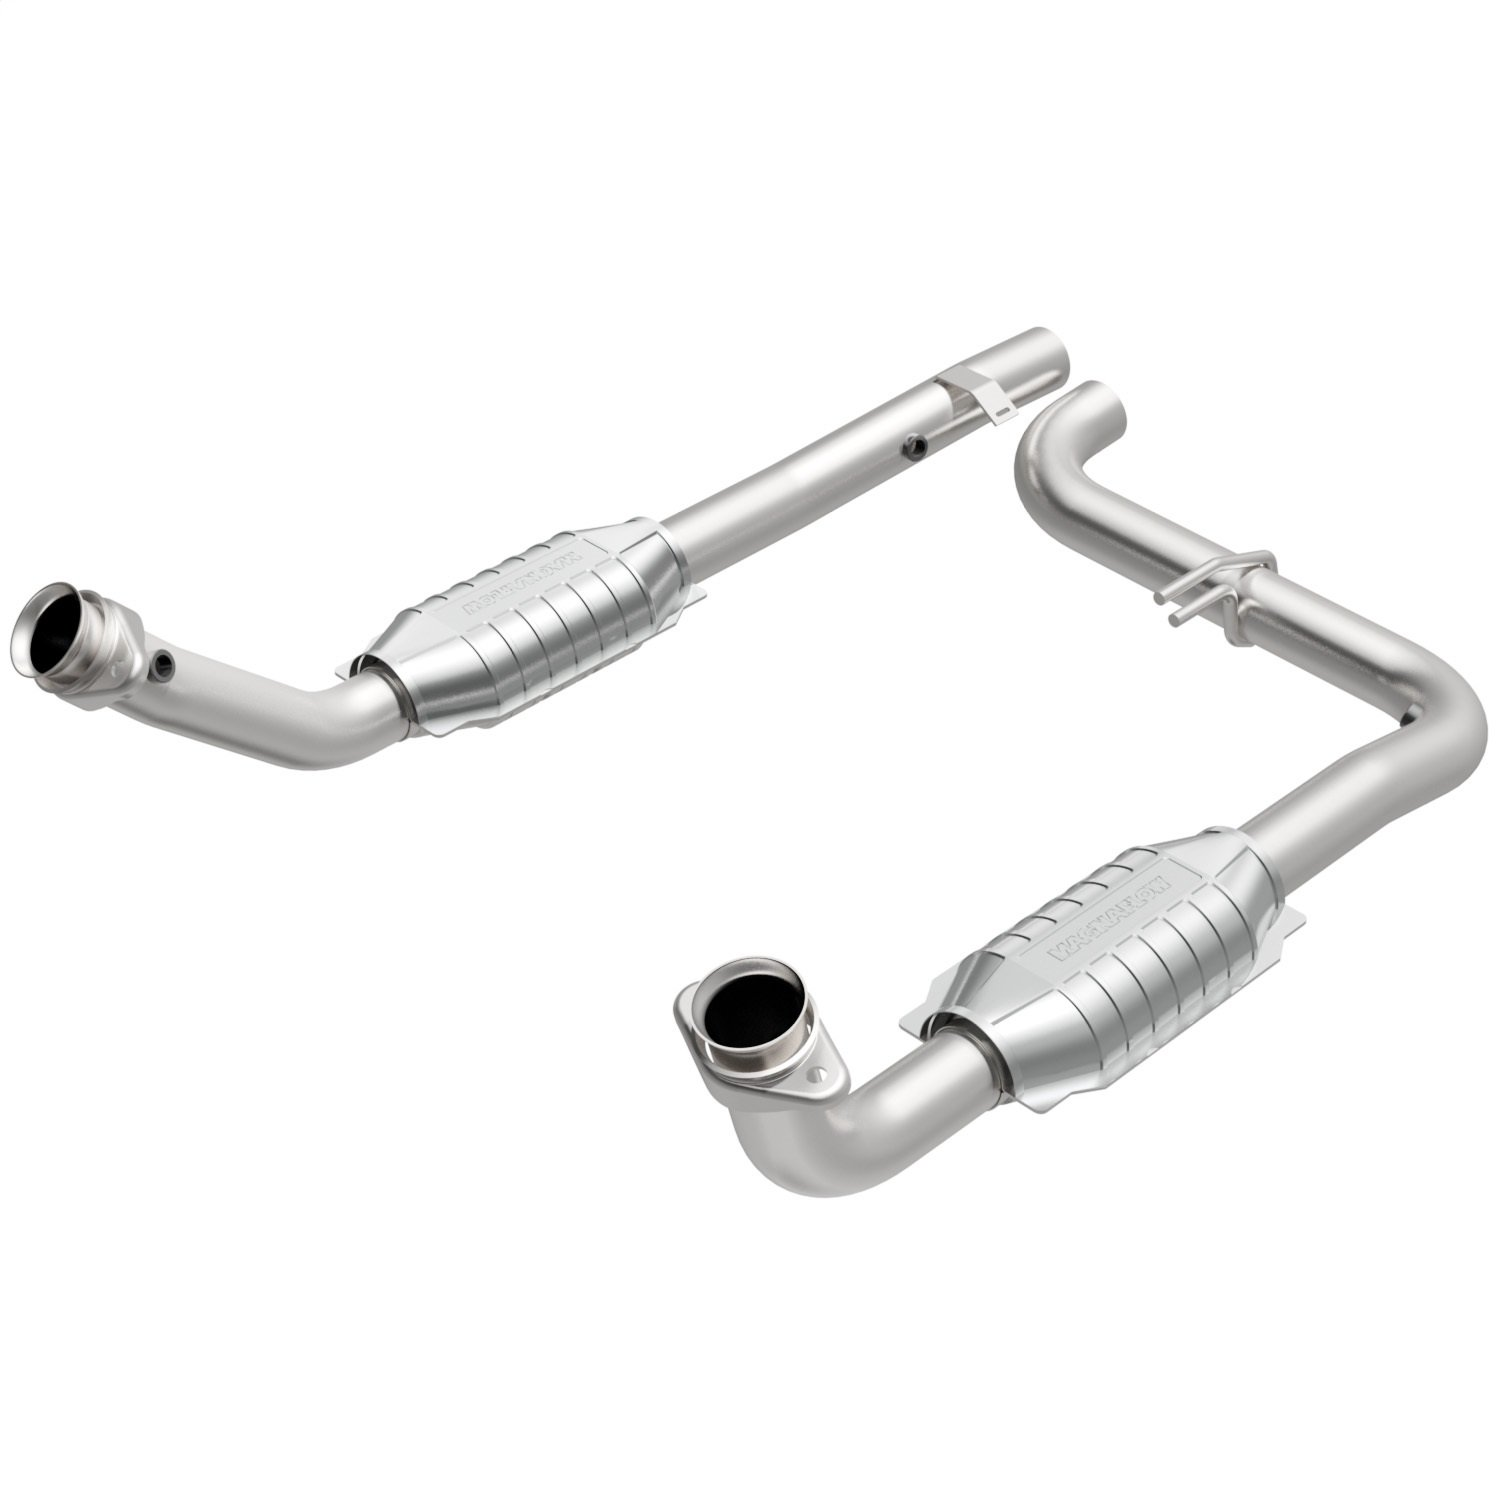 MagnaFlow Exhaust Products Non CARB compliant MagnaFlow 51463 Direct Fit Catalytic Converter